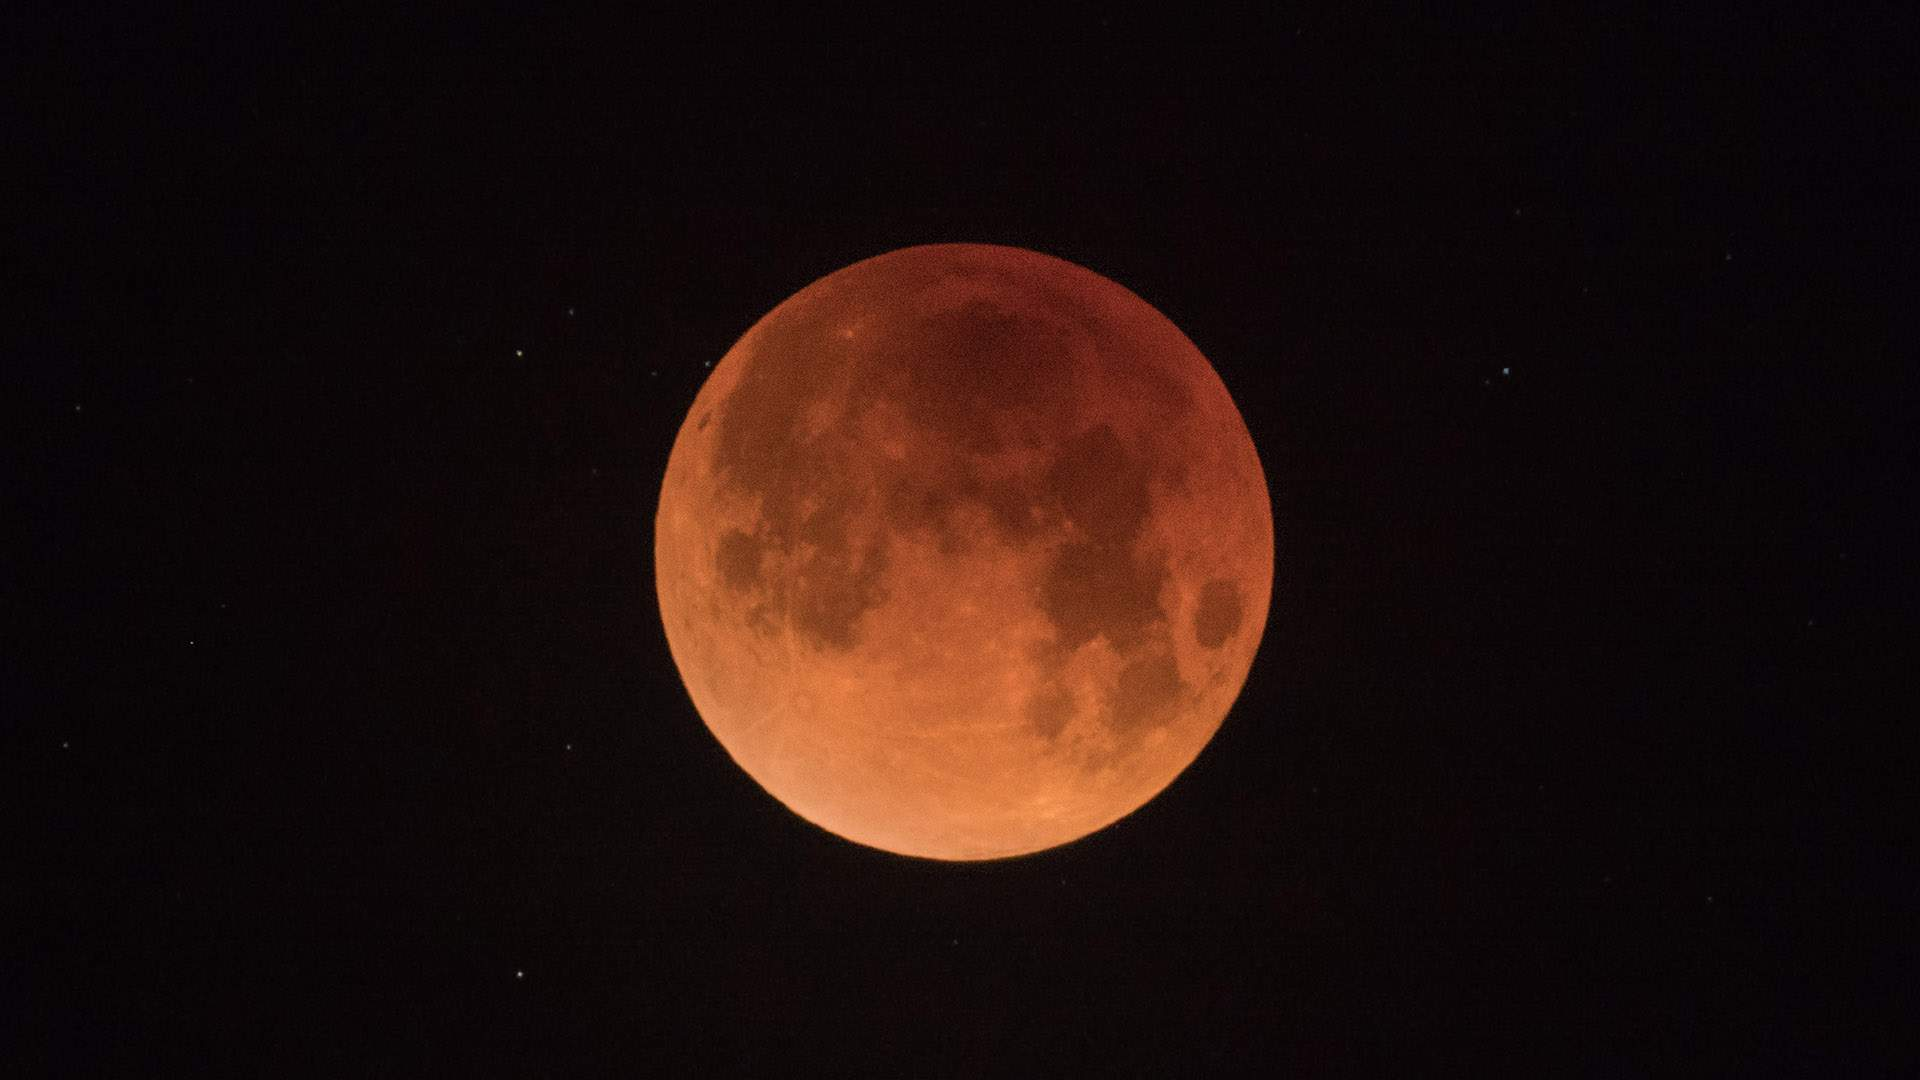 A 'Blood' Supermoon and Total Lunar Eclipse Will Be Visible in Australia This Month